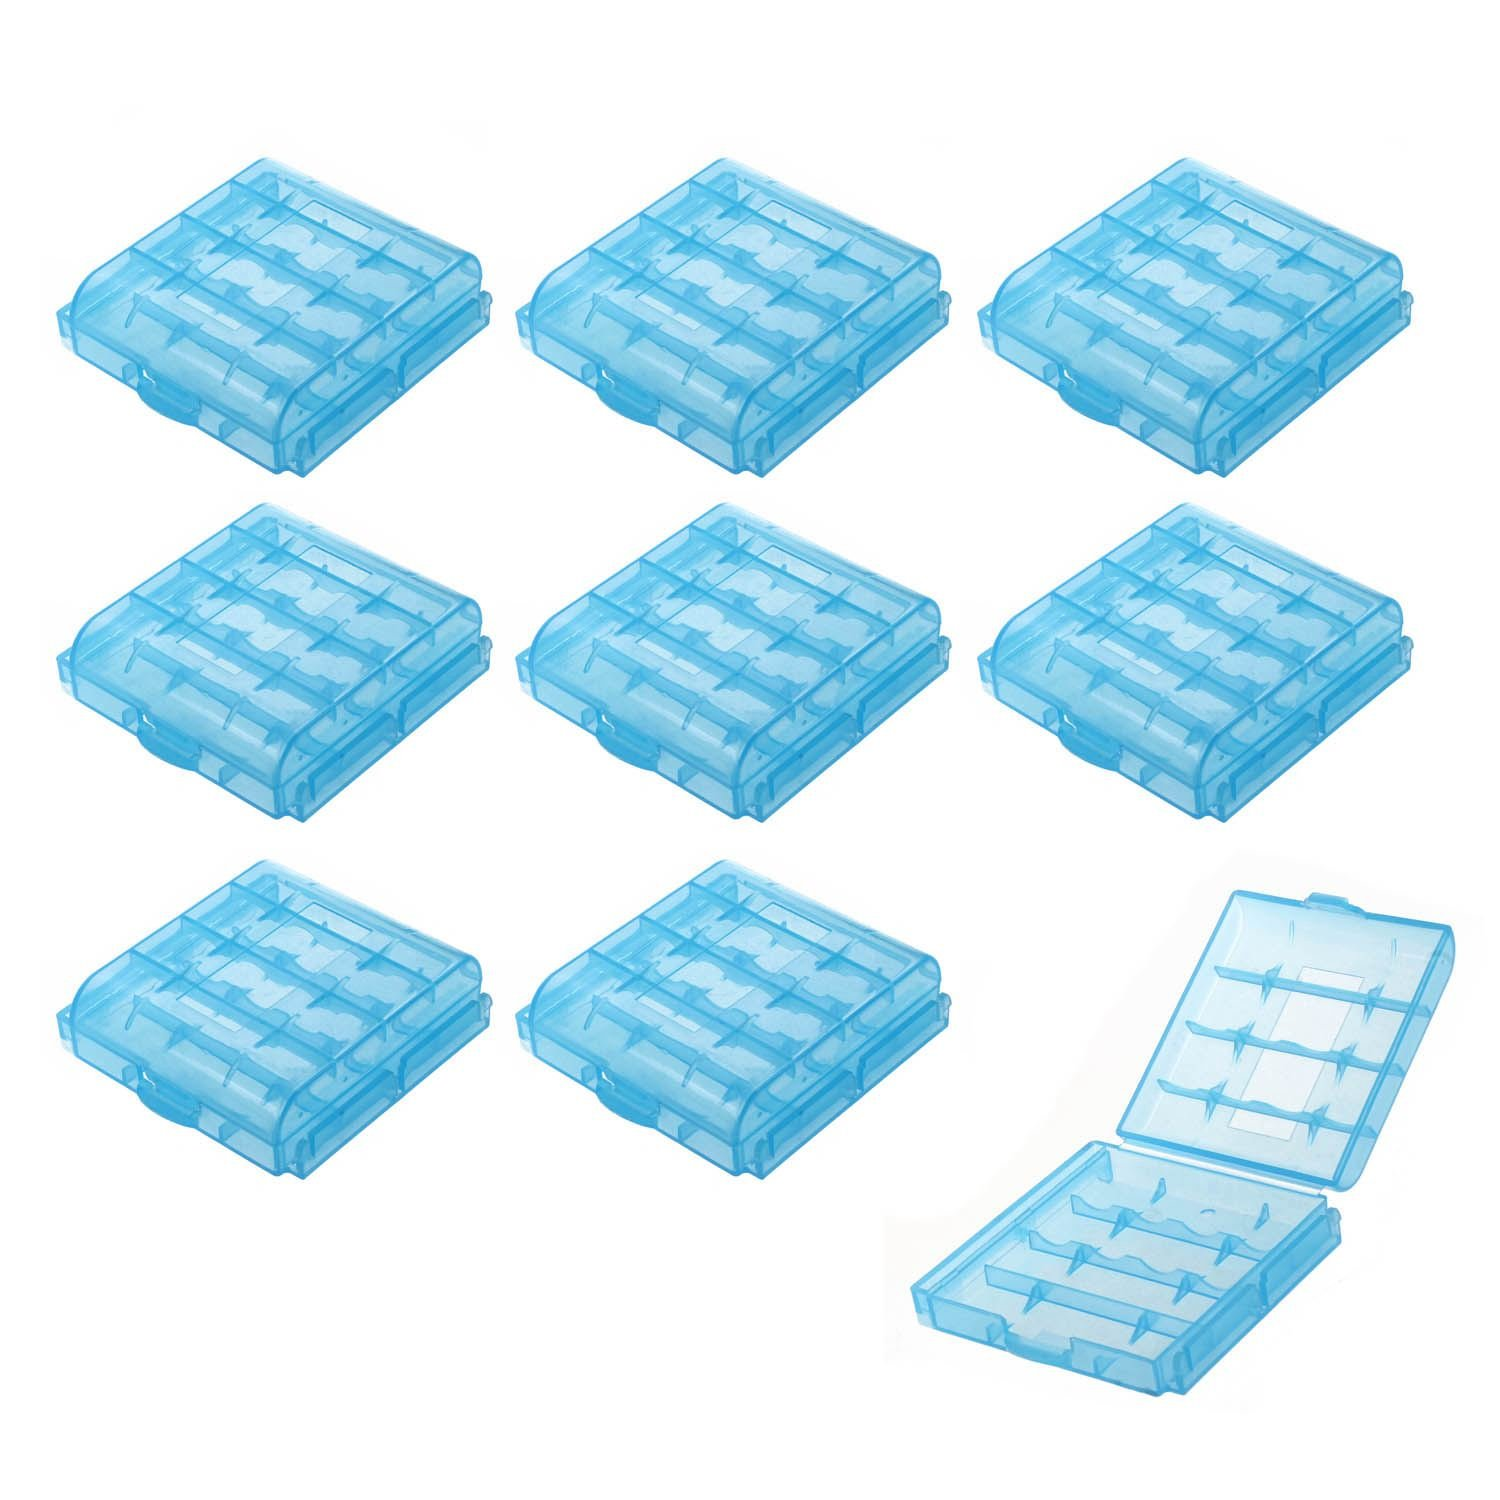 SODIAL(R) Pack of 9 PCS AA / AAA Battery Storage Hard Case Box-Blue 044825C5